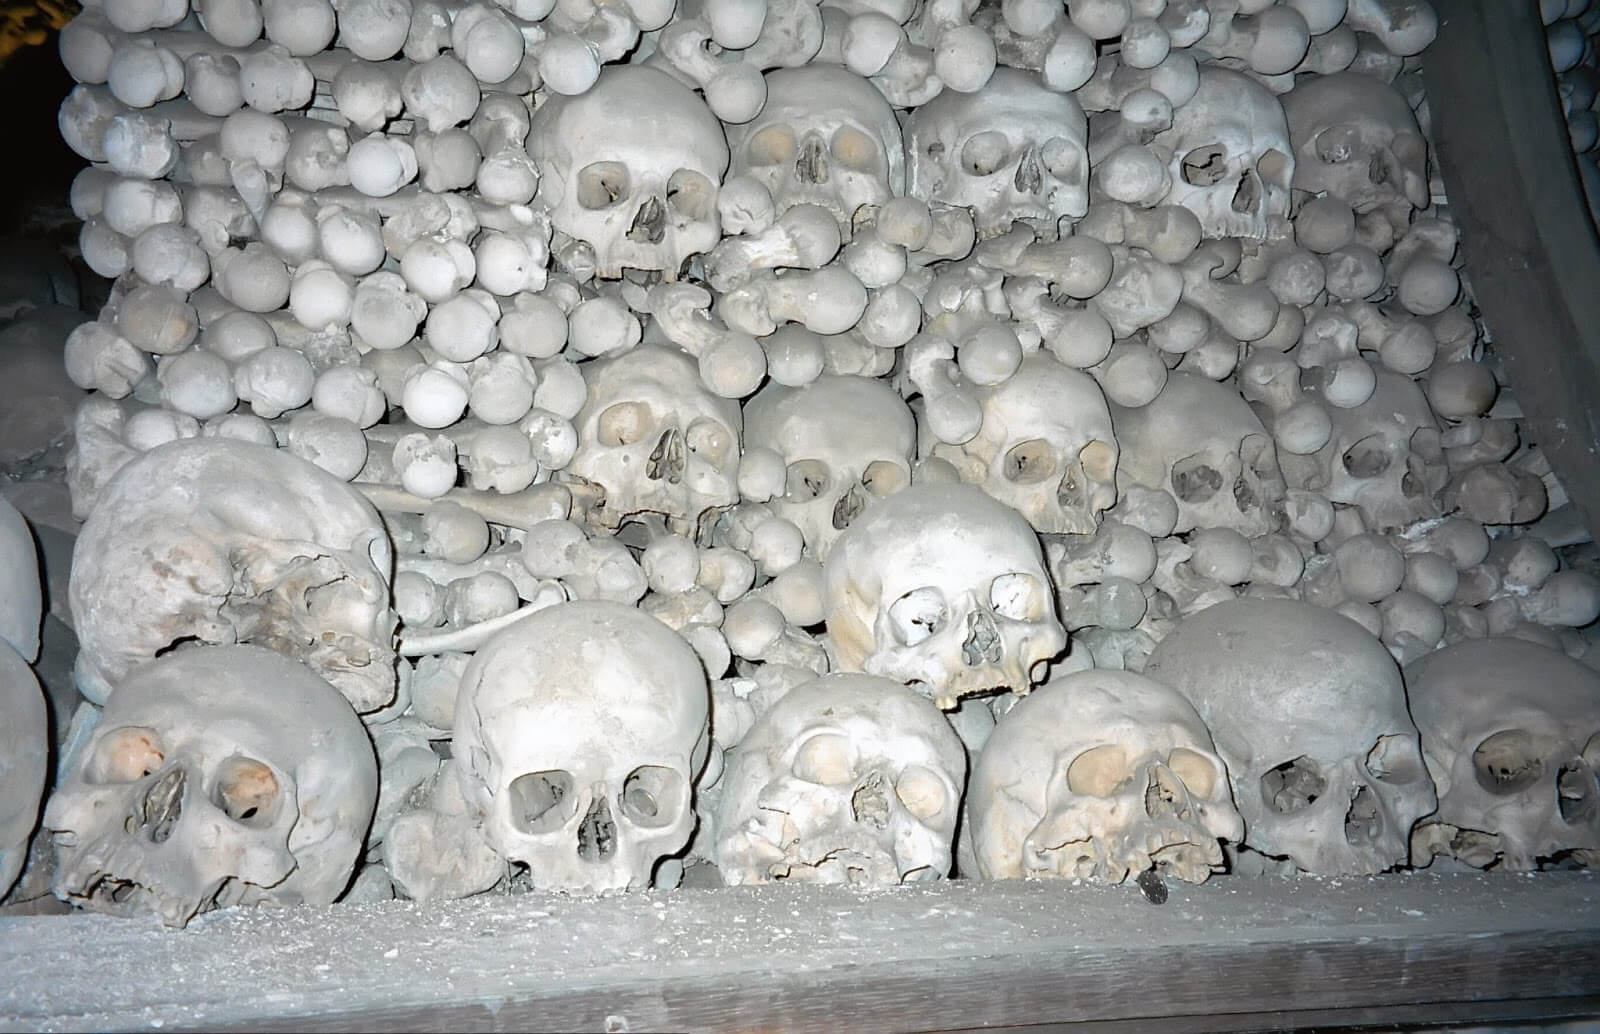 Pile of skulls and femurs at Sedlec Ossuary in the Czech Republic